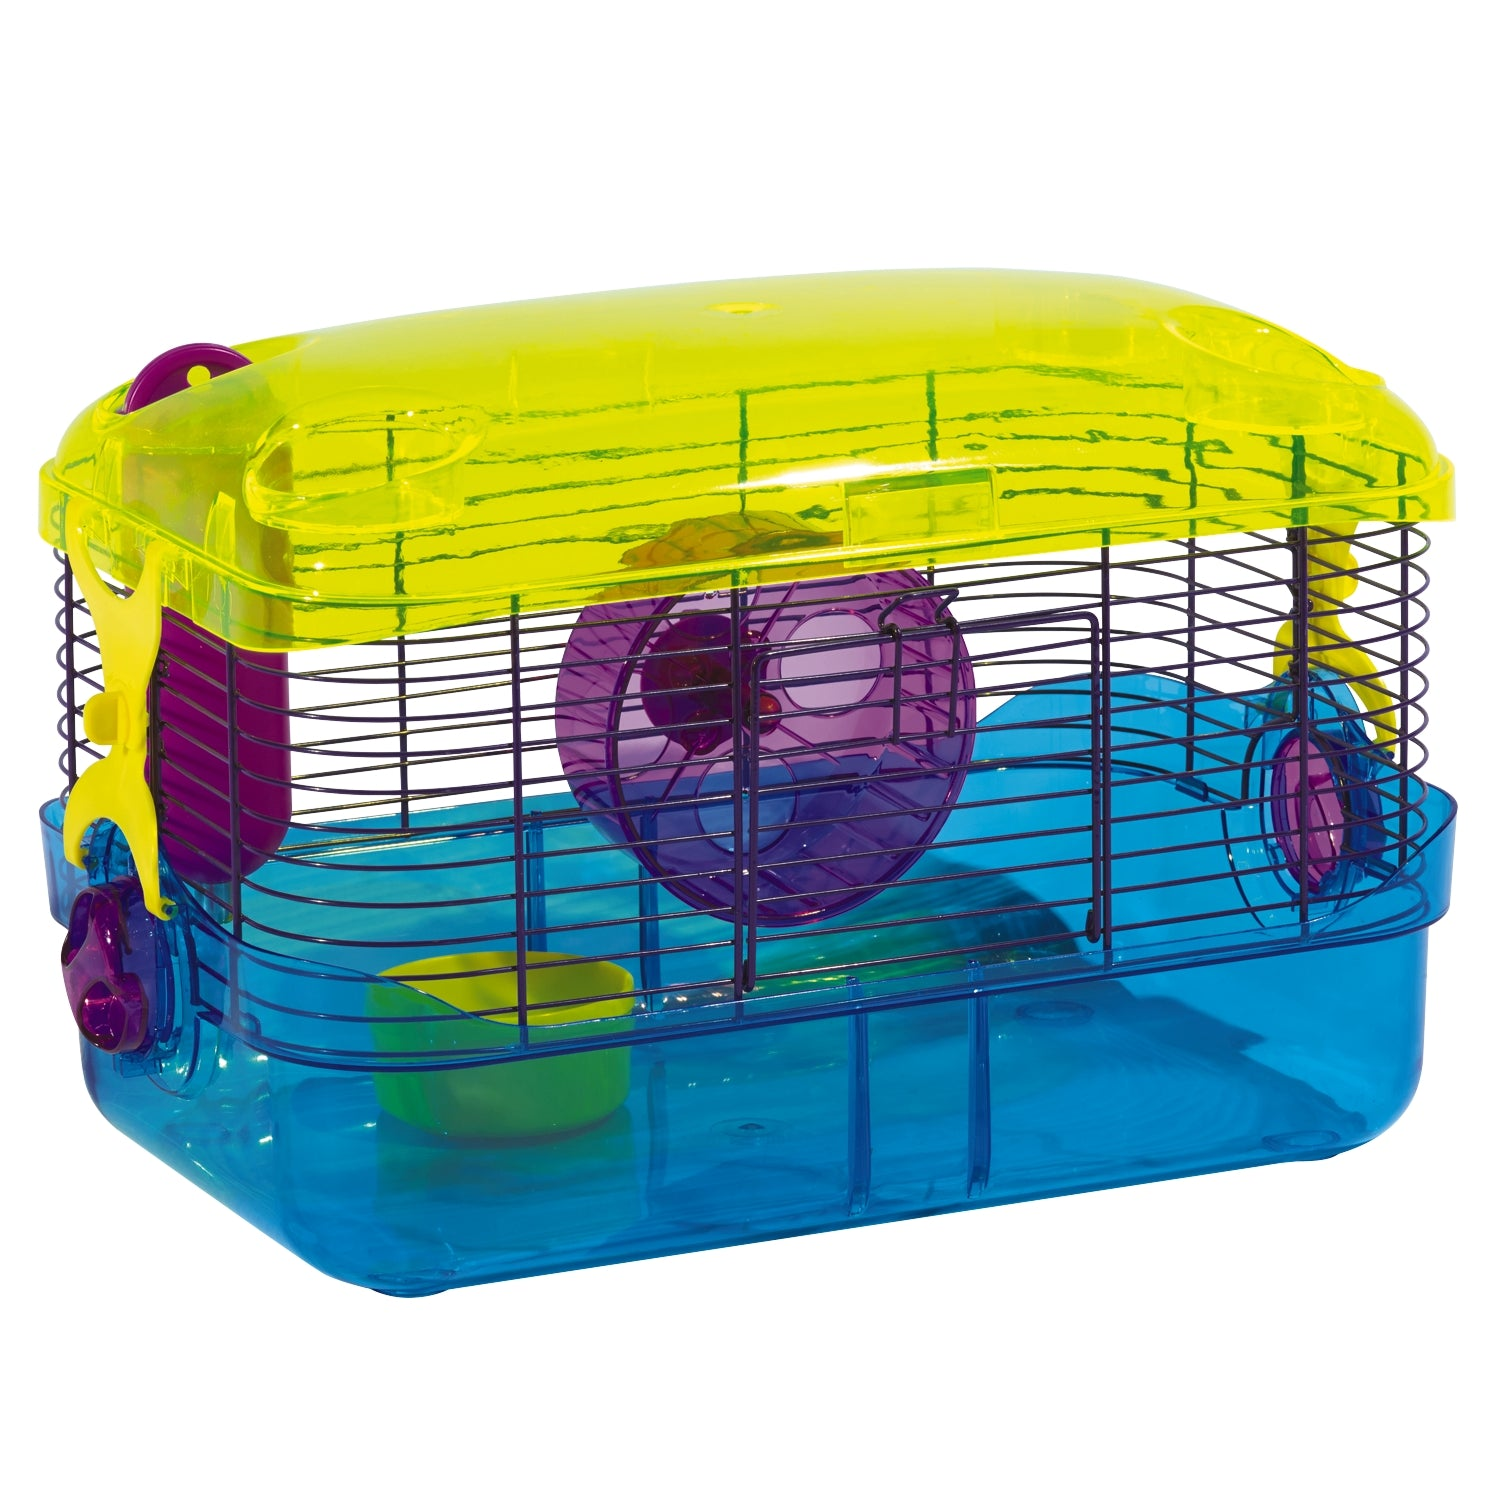 Kaytee CritterTrail Simple Start Habitat Gerbil/Hamster Cage